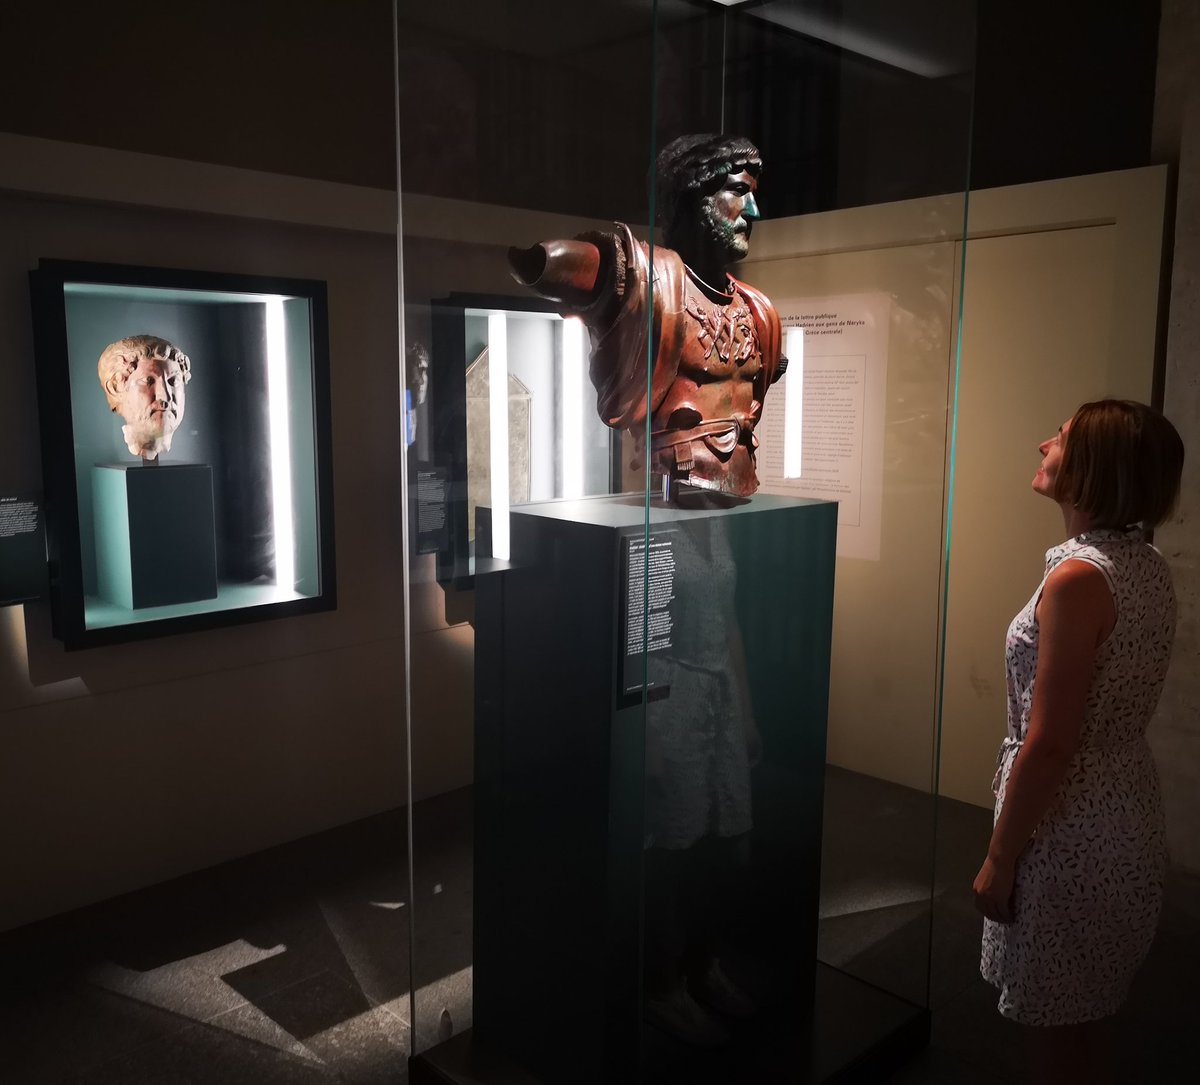 My fourth encounter with the wonderful bronze bust of Hadrian from Tel Shalem, Israel. On loan from the Israel Museum in Jerusalem. #Hadrian1900